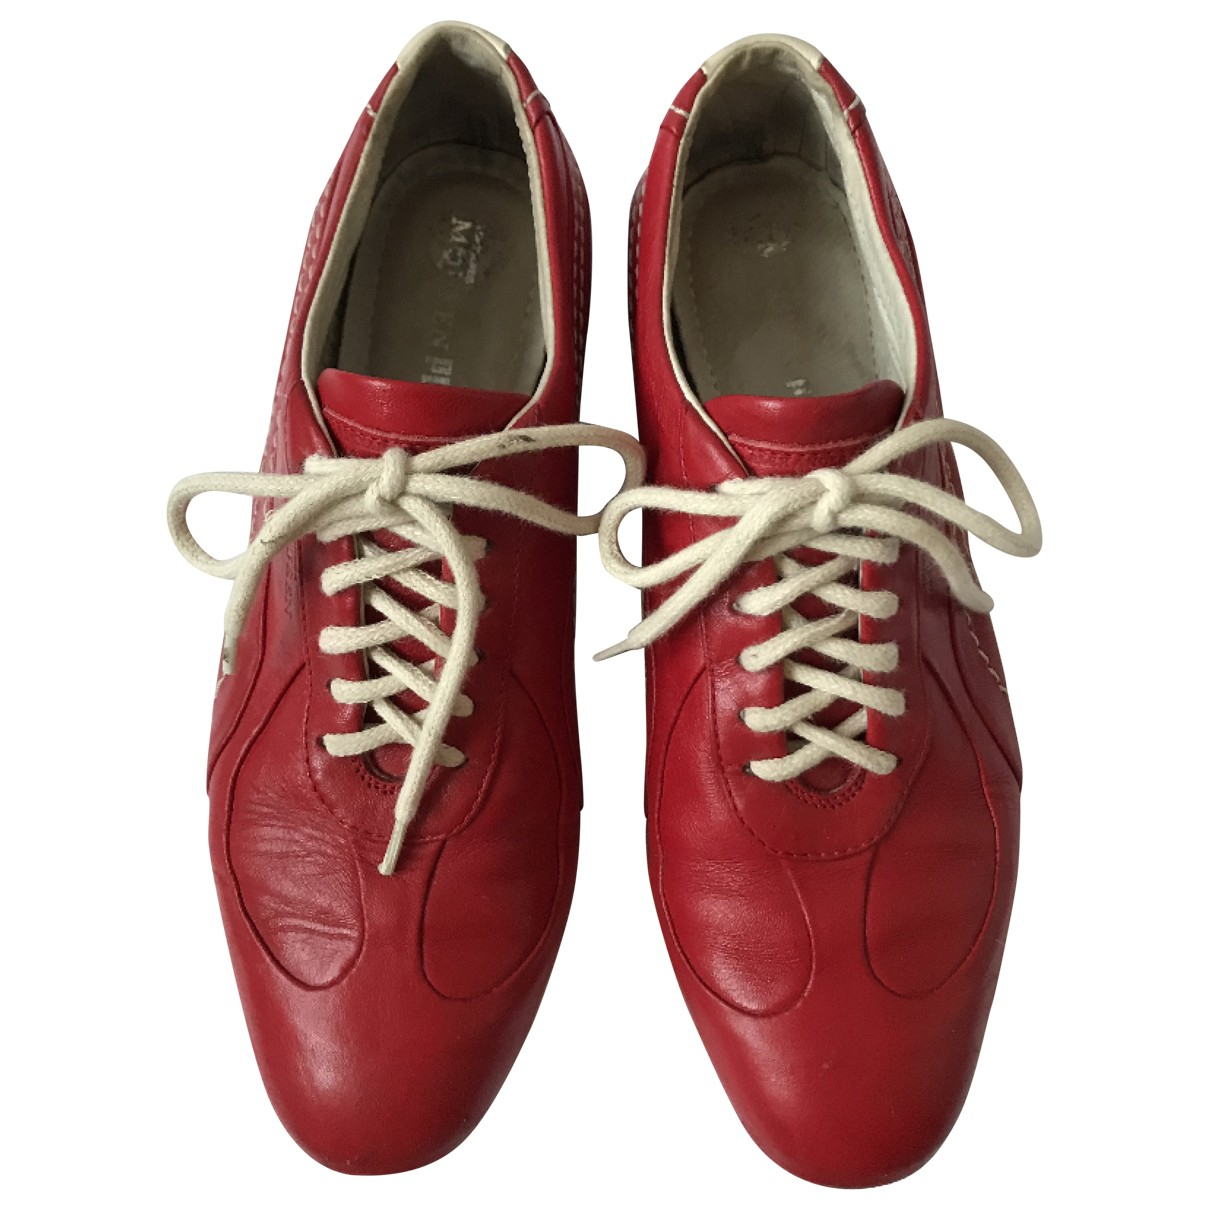 Alexander Mcqueen For Puma \N Red Leather Trainers for Women 38 EU